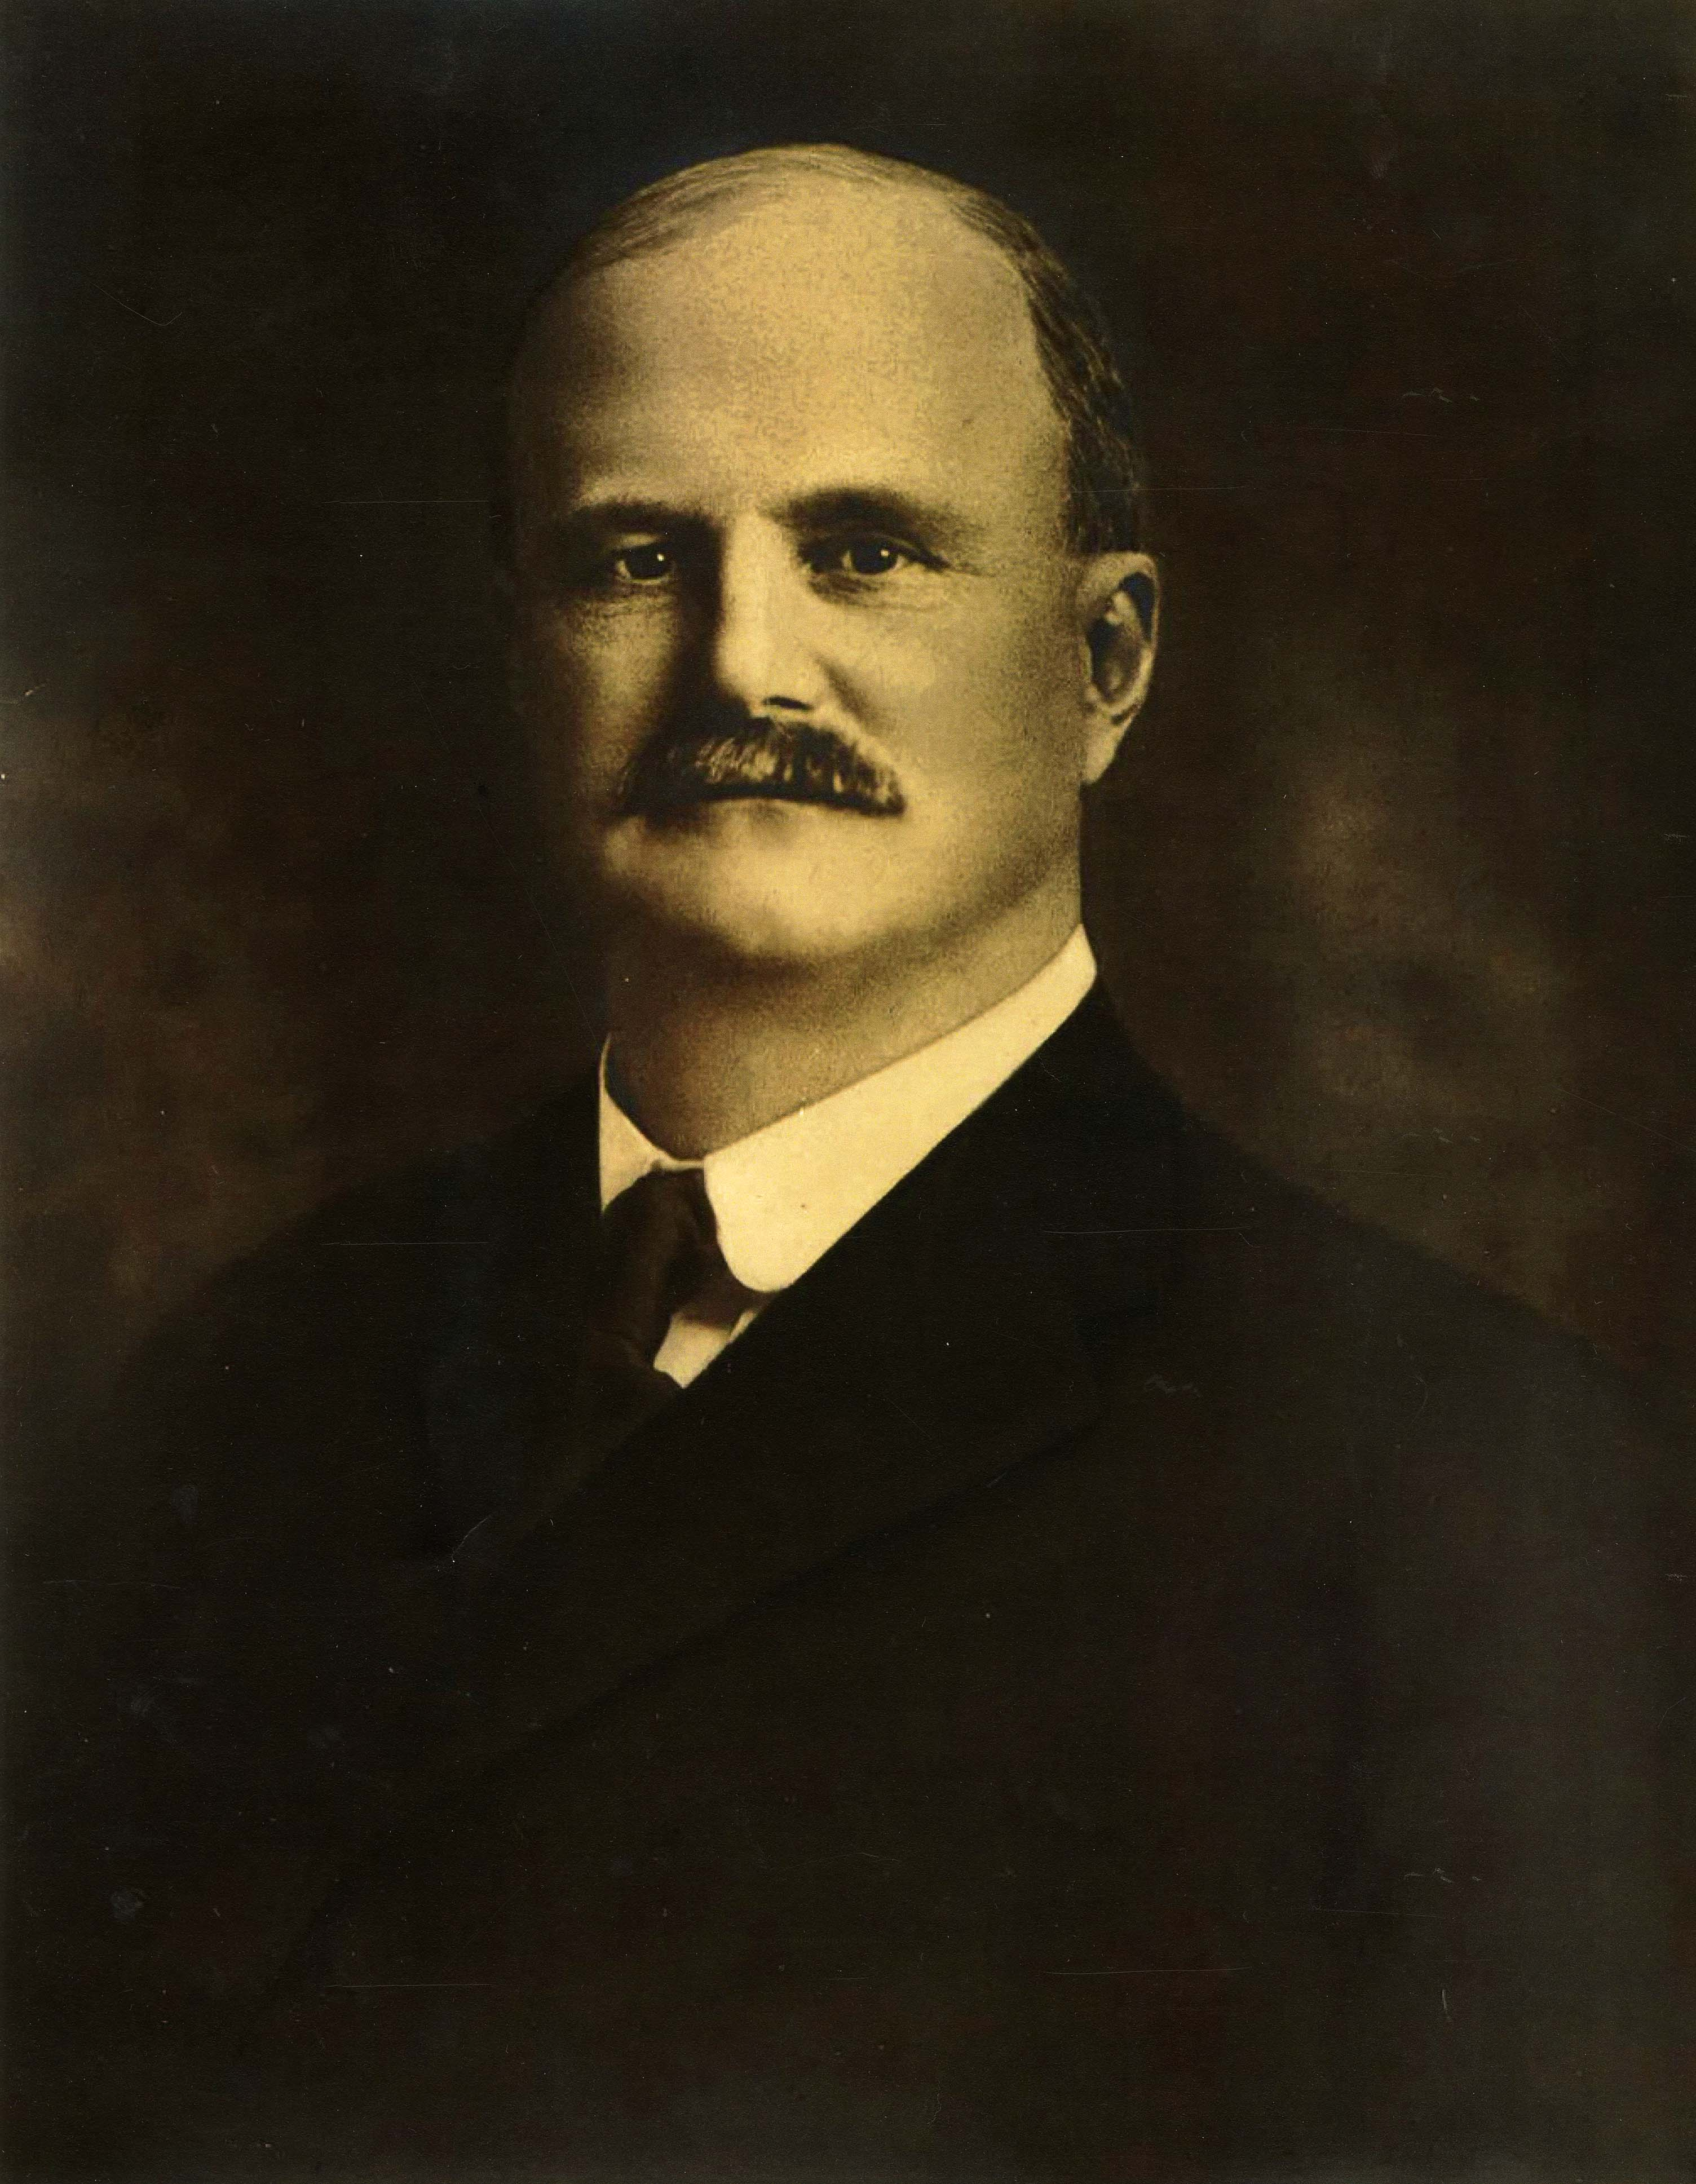 George Keeney, President of the Somersville Manufacturing Company, 1901-1923